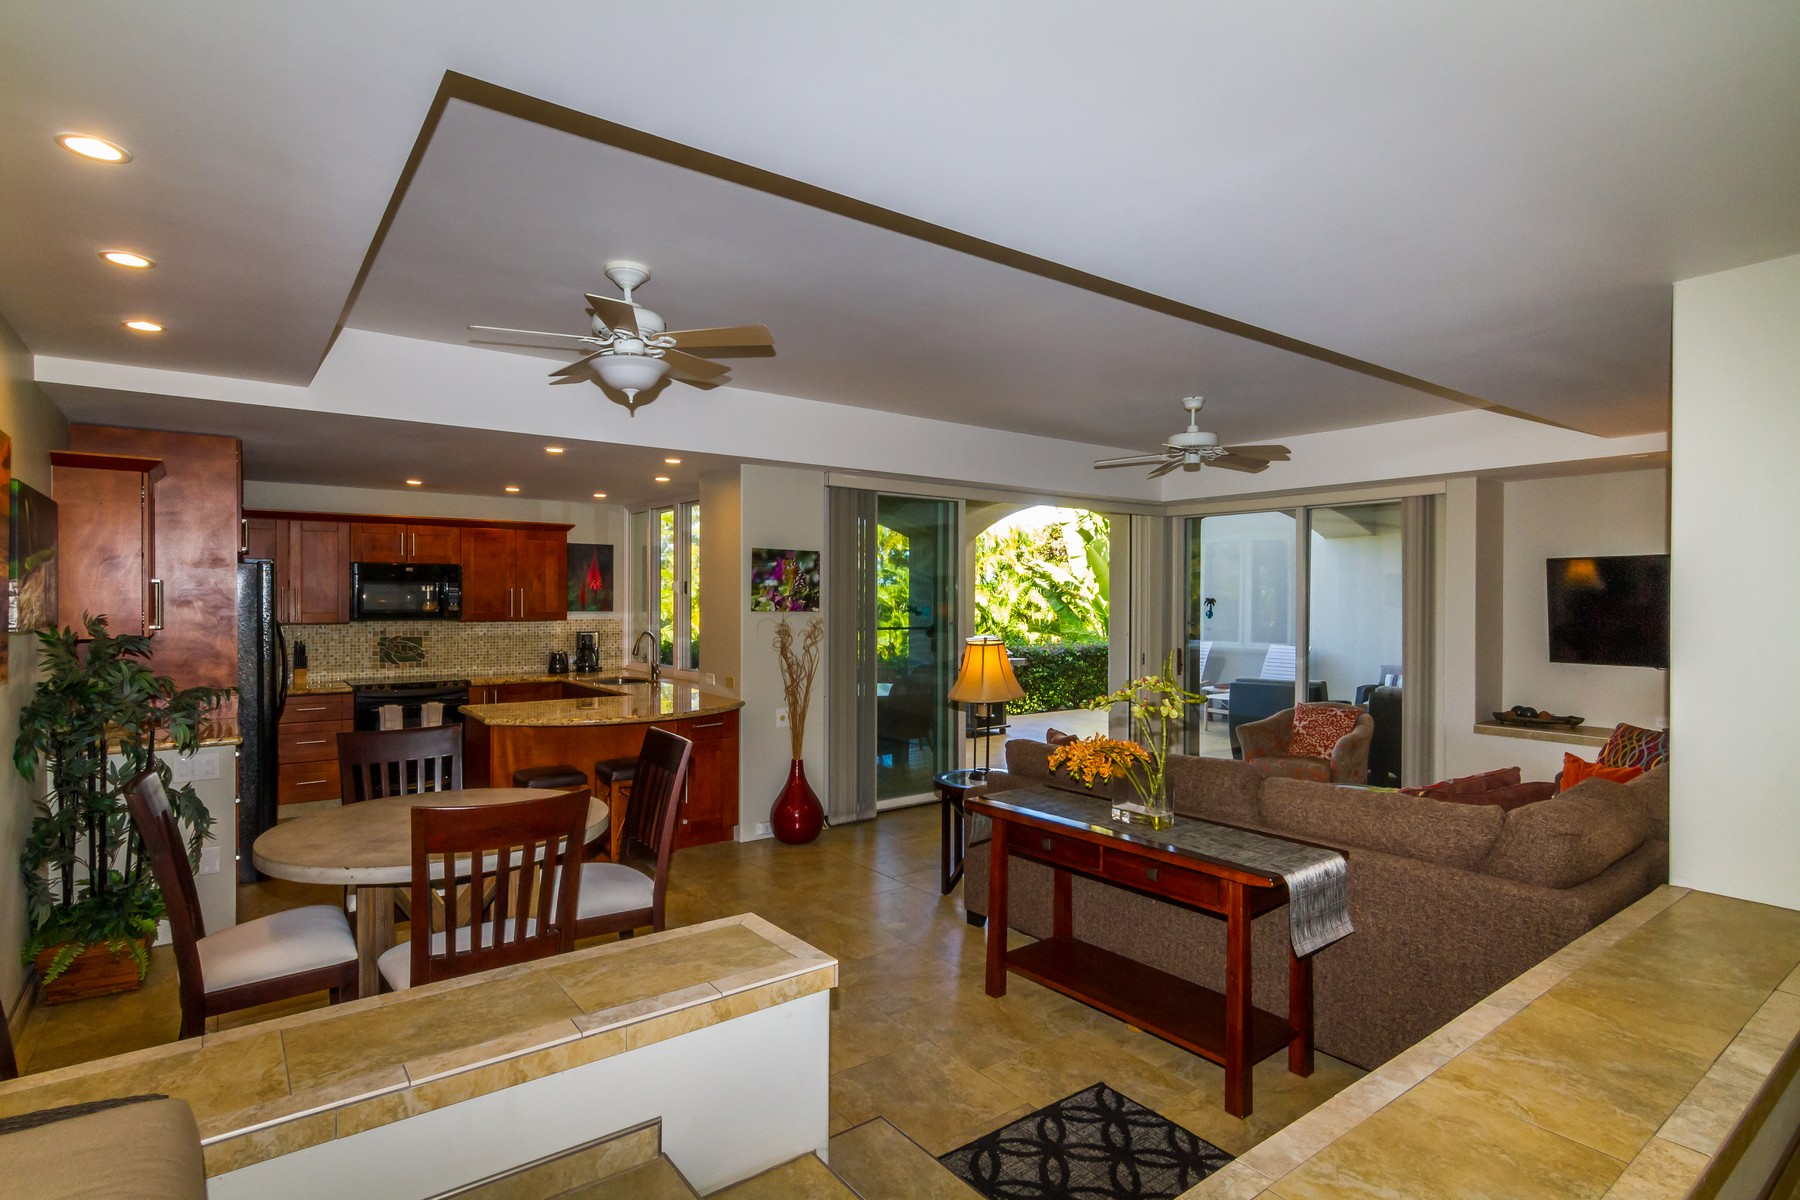 Condomínio para Venda às Fully Renovated, Furnished 1 Bed Condo With Short Walk To Beach 3200 Wailea Alanui Drive, Palms at Wailea 2203, Wailea, Havaí, 96753 Estados Unidos